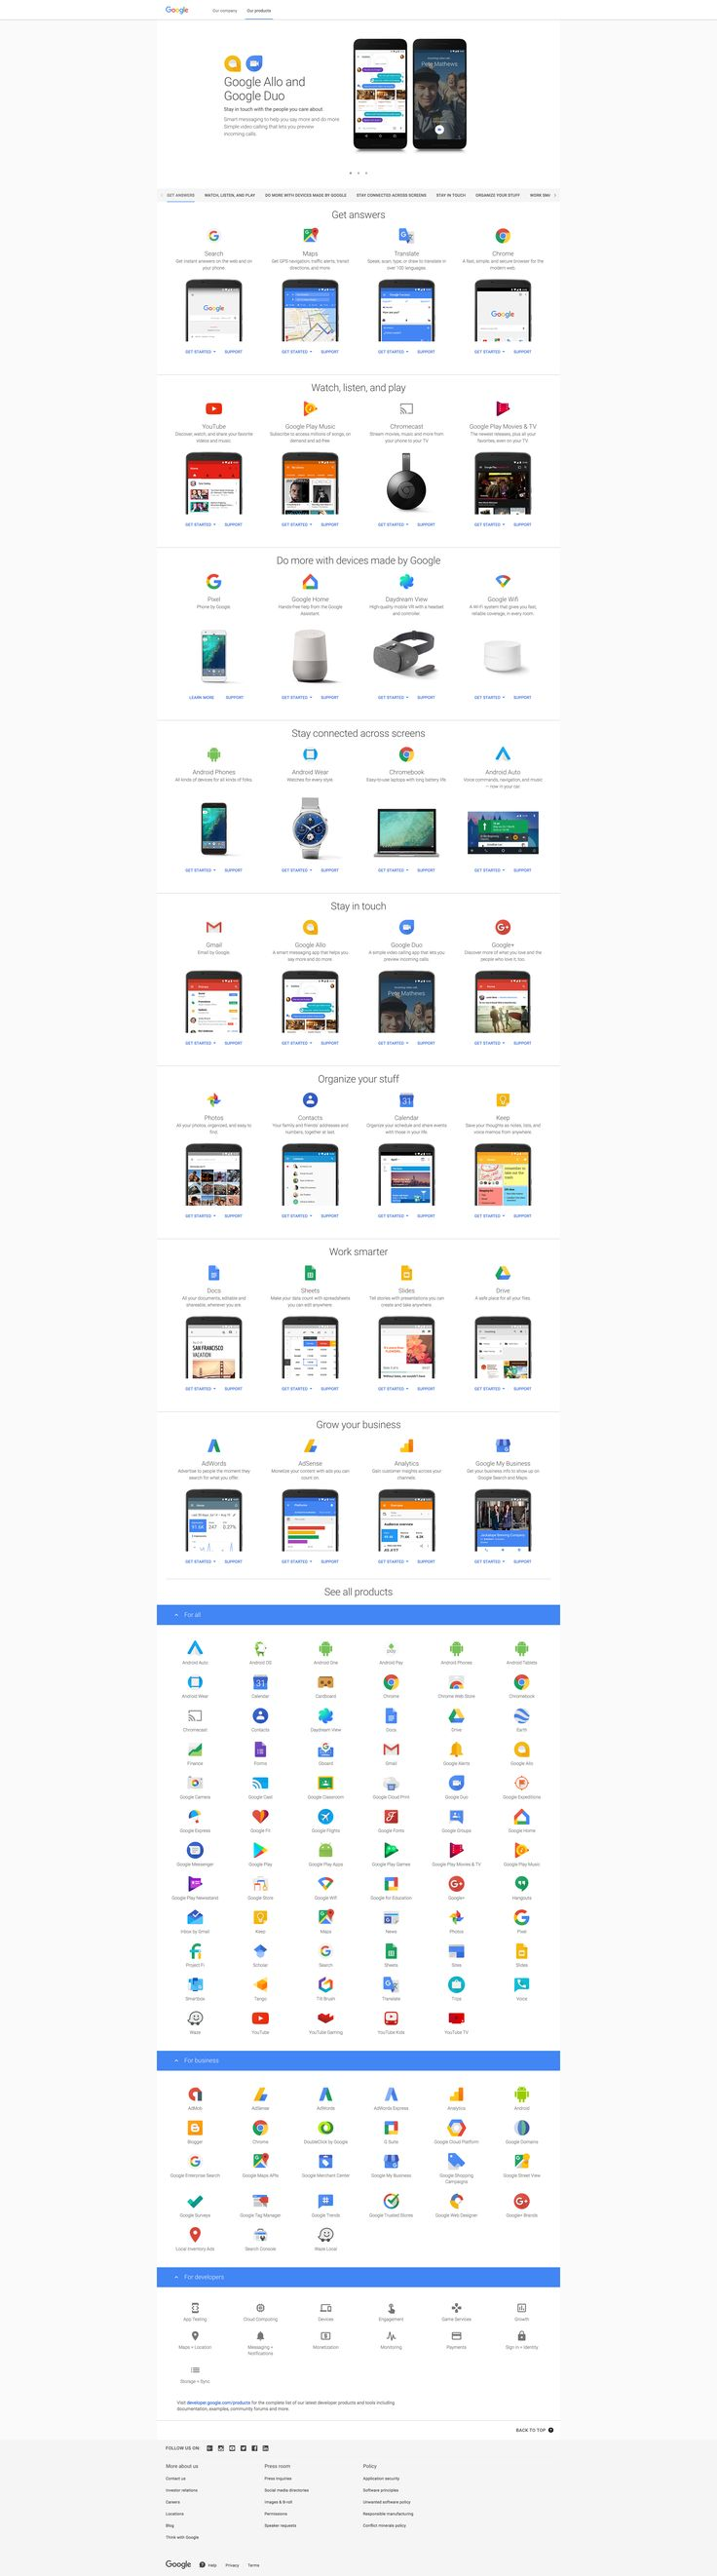 The moment when you realise how big actually #Google is. Do you know more than 5% of their products? Let me know, pls.  #Marketing #GoogleSearch #WebTraffic #Optimization #Content #SEO #GoogleProducts #Startups #DevTools #WebProducts #Alphabet #Business #LocalBusiness #OpsTools #Growth #CRM #Sales #BizDev #CyberSecurity #Security #Productivity #Entrepreneurship #Finance #Analysis #DataTools #DataManagement #Privacy #PrivacyManagement #ProductDevelopment #Platform #API #SDK